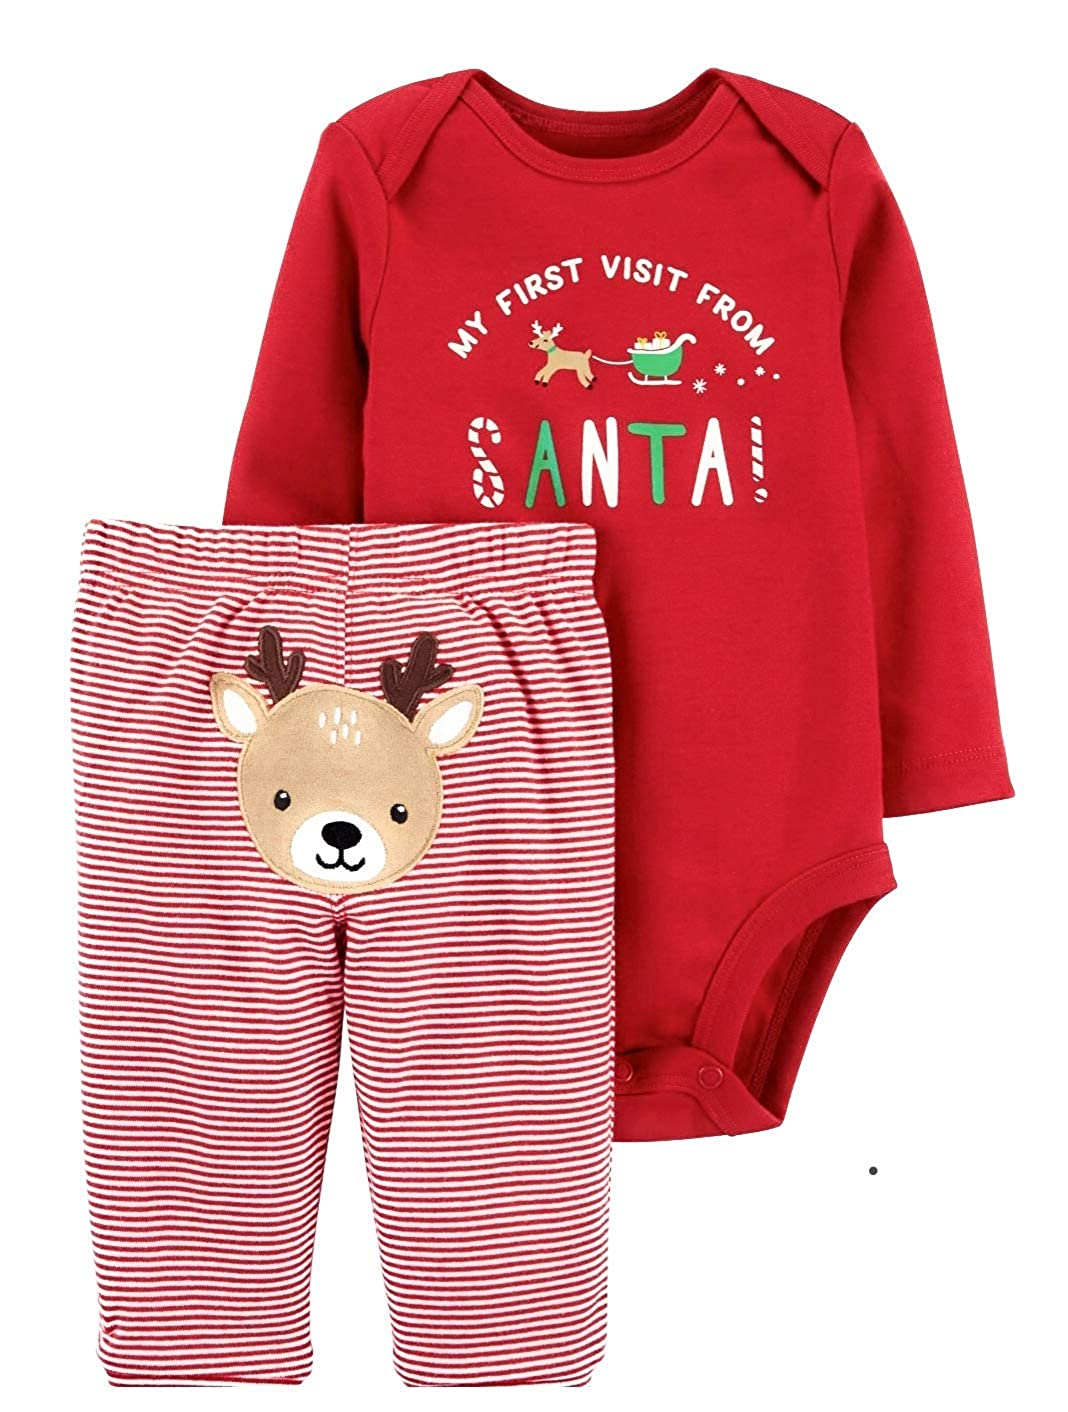 Carters Baby Boys 2 Pc Sets 119g104